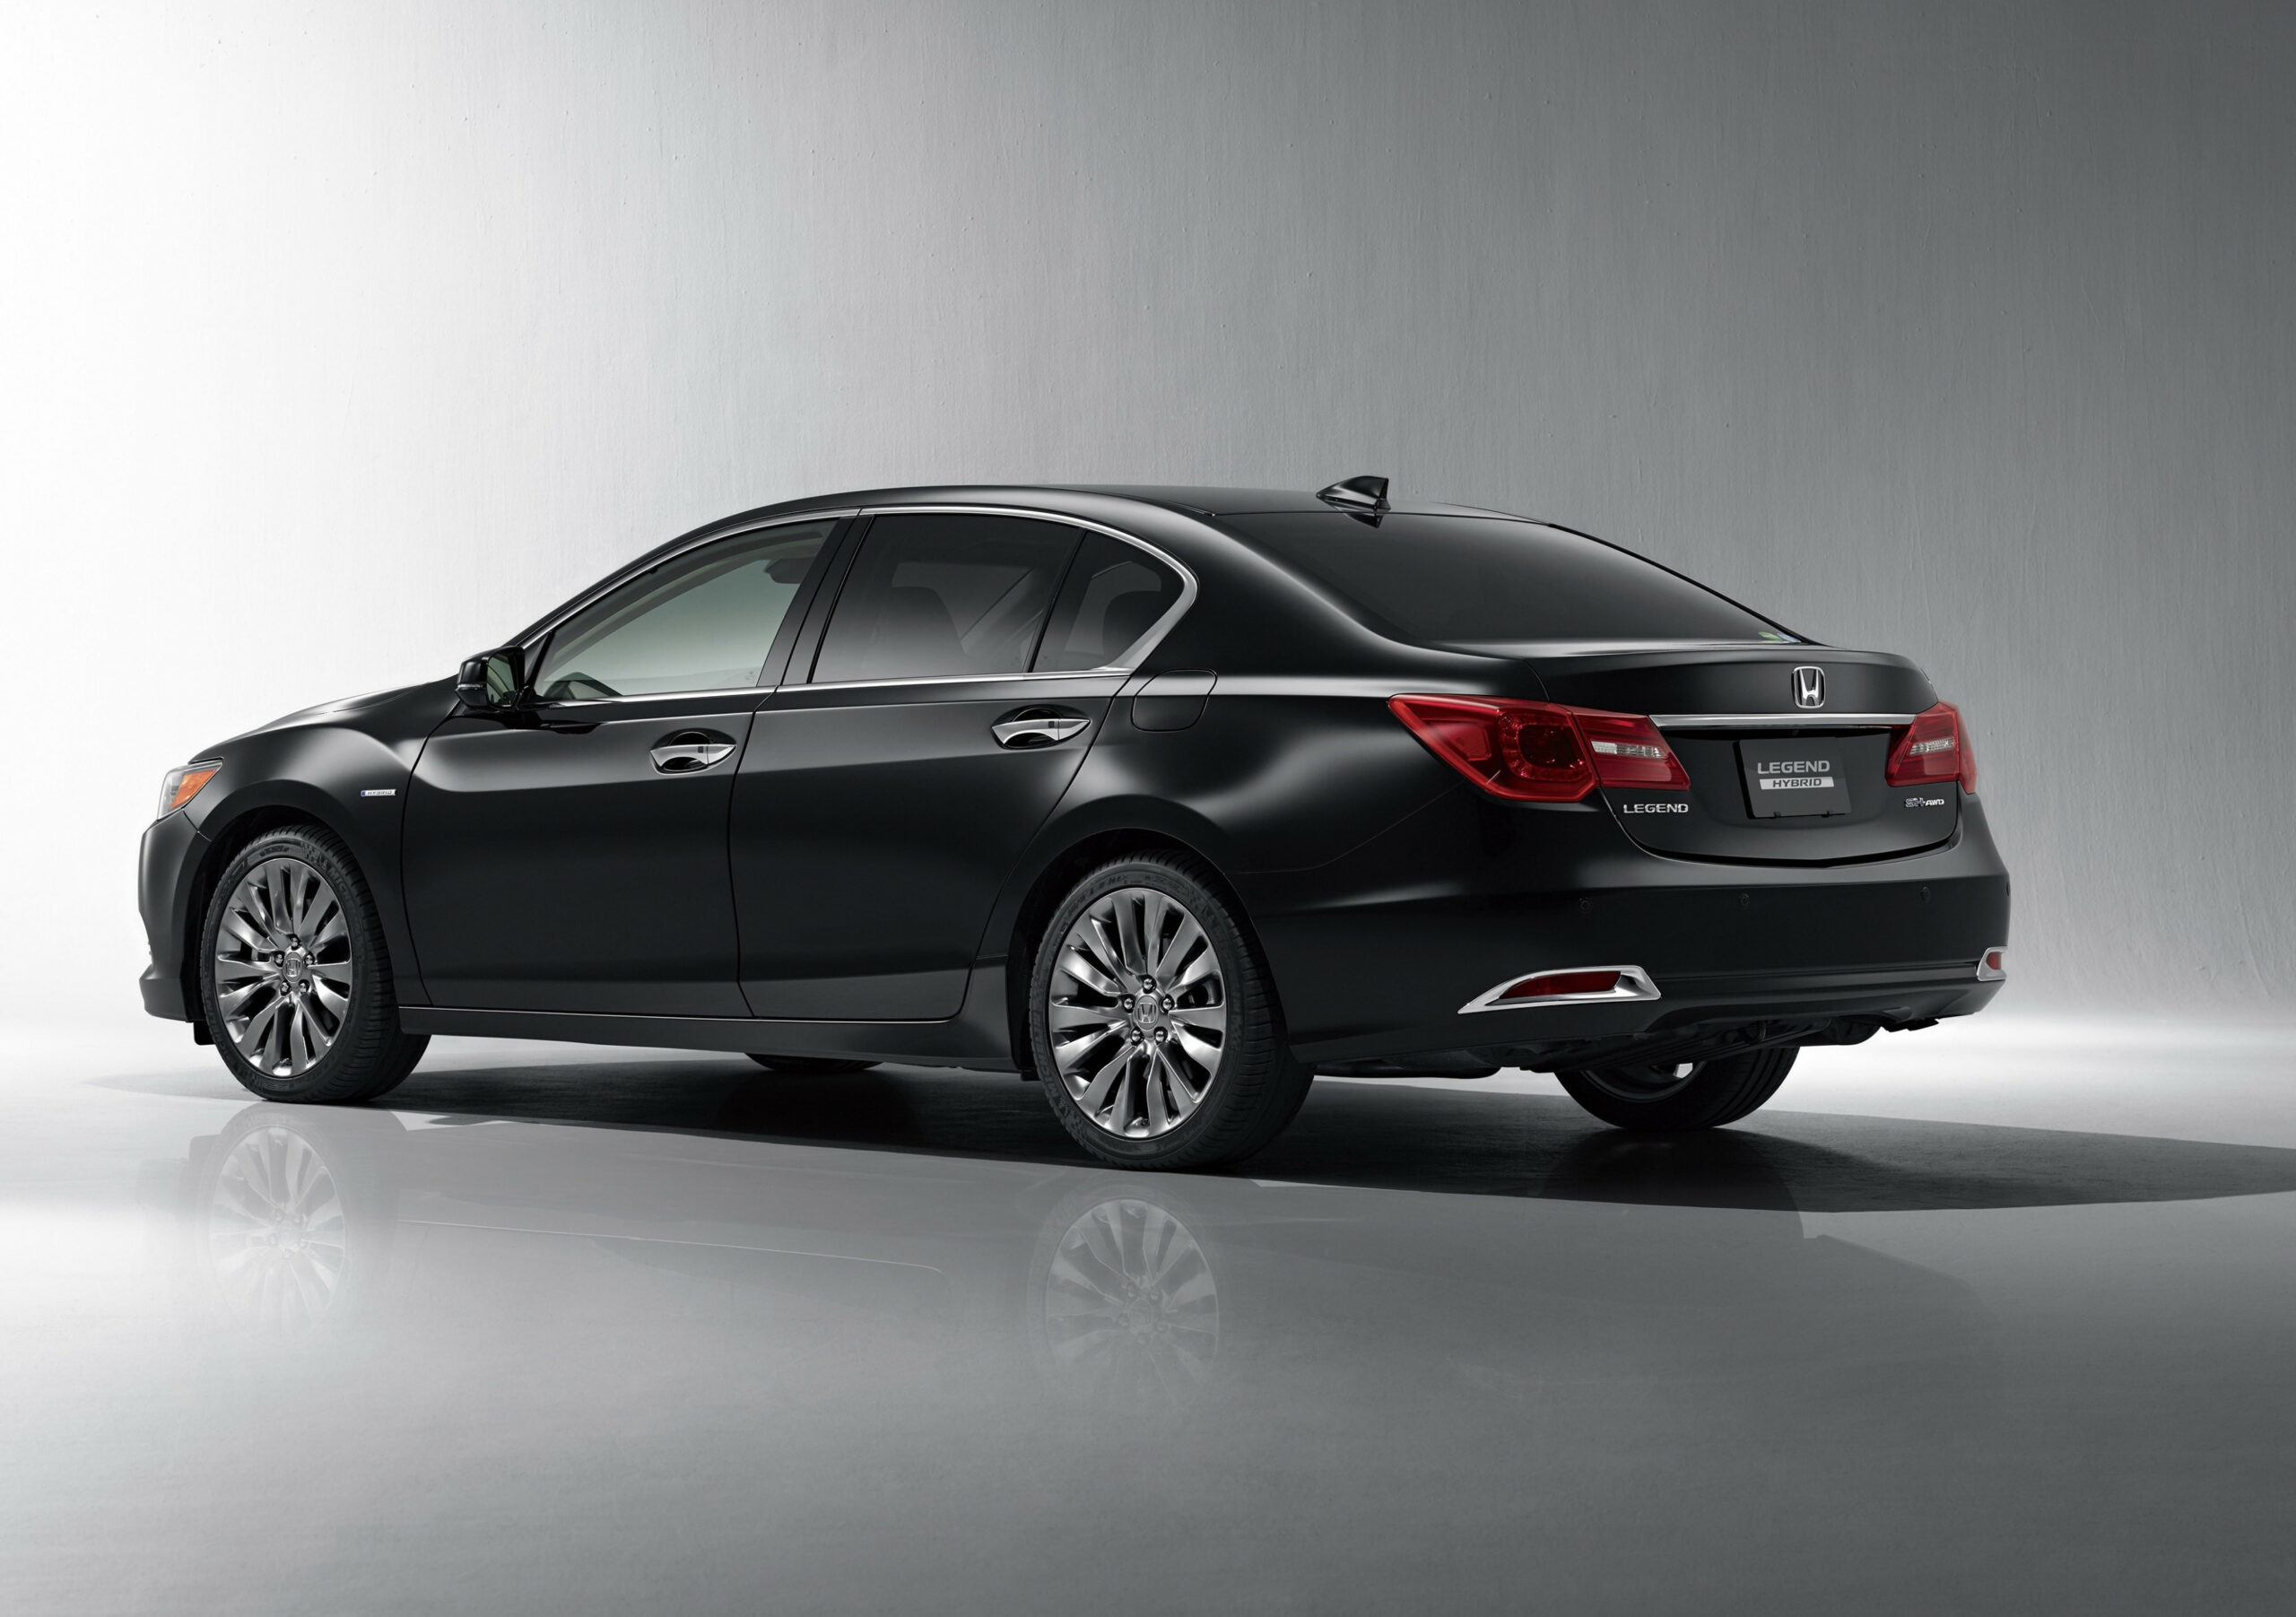 HONDA Legend Spezifikationen & Fotos - 8, 8, 8, 8 ...